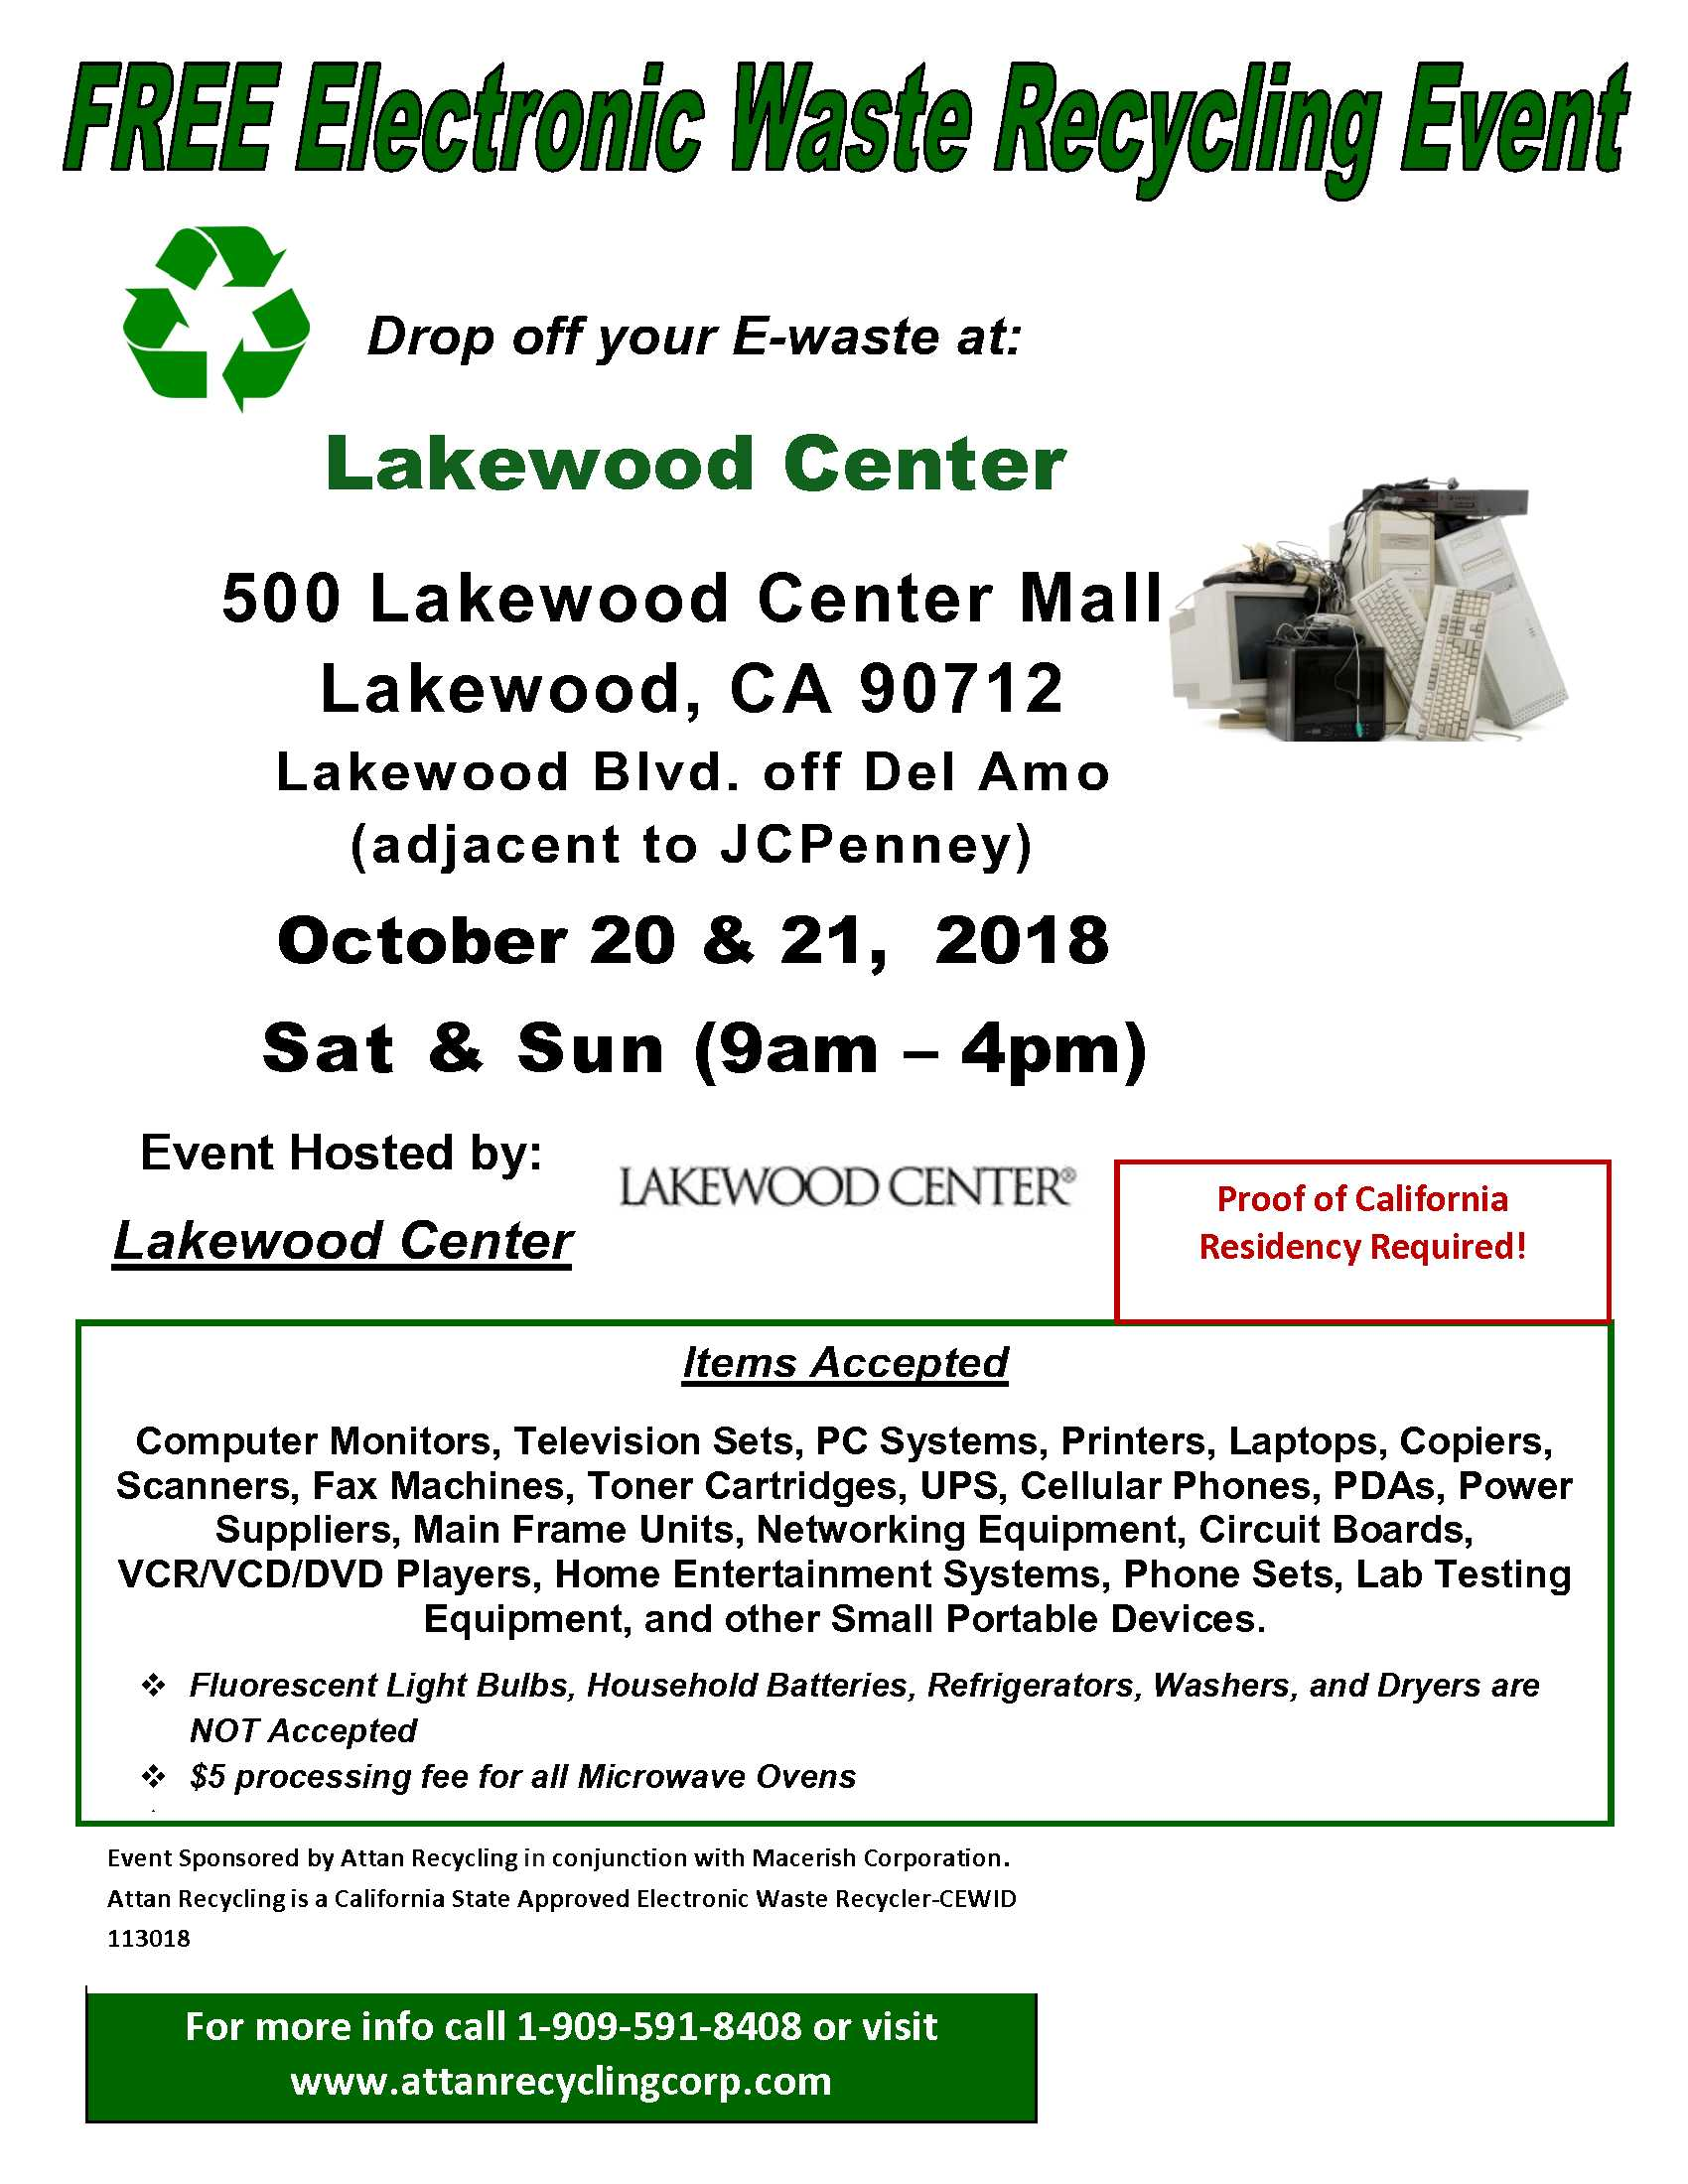 ad free electronic waste recycling event